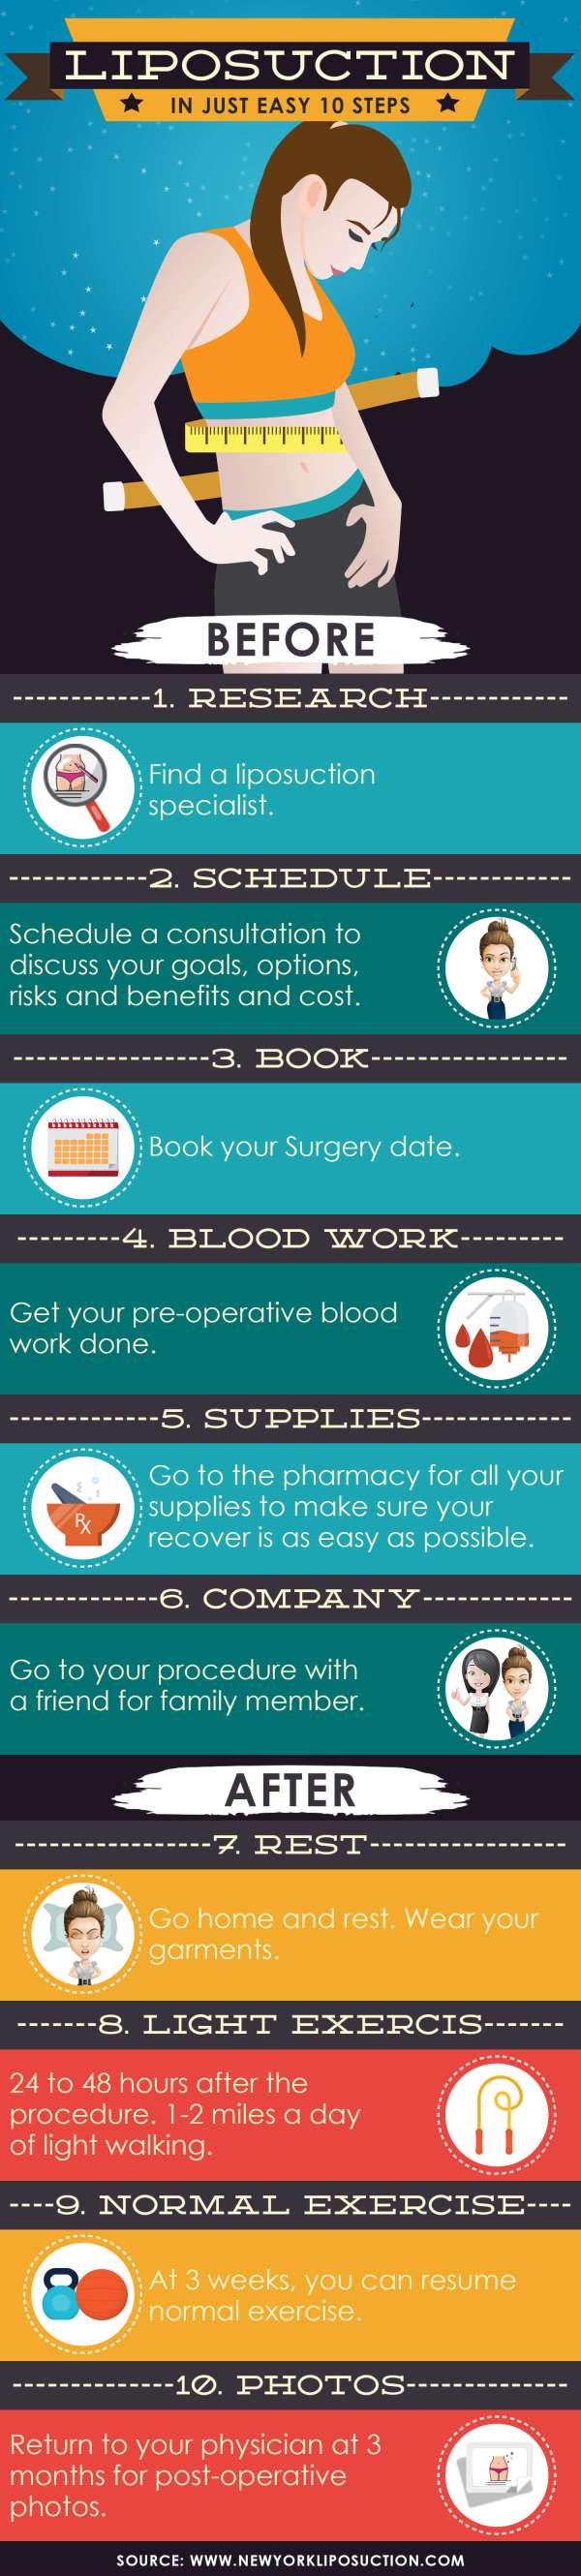 Liposuction_in_just_easy_10_Steps